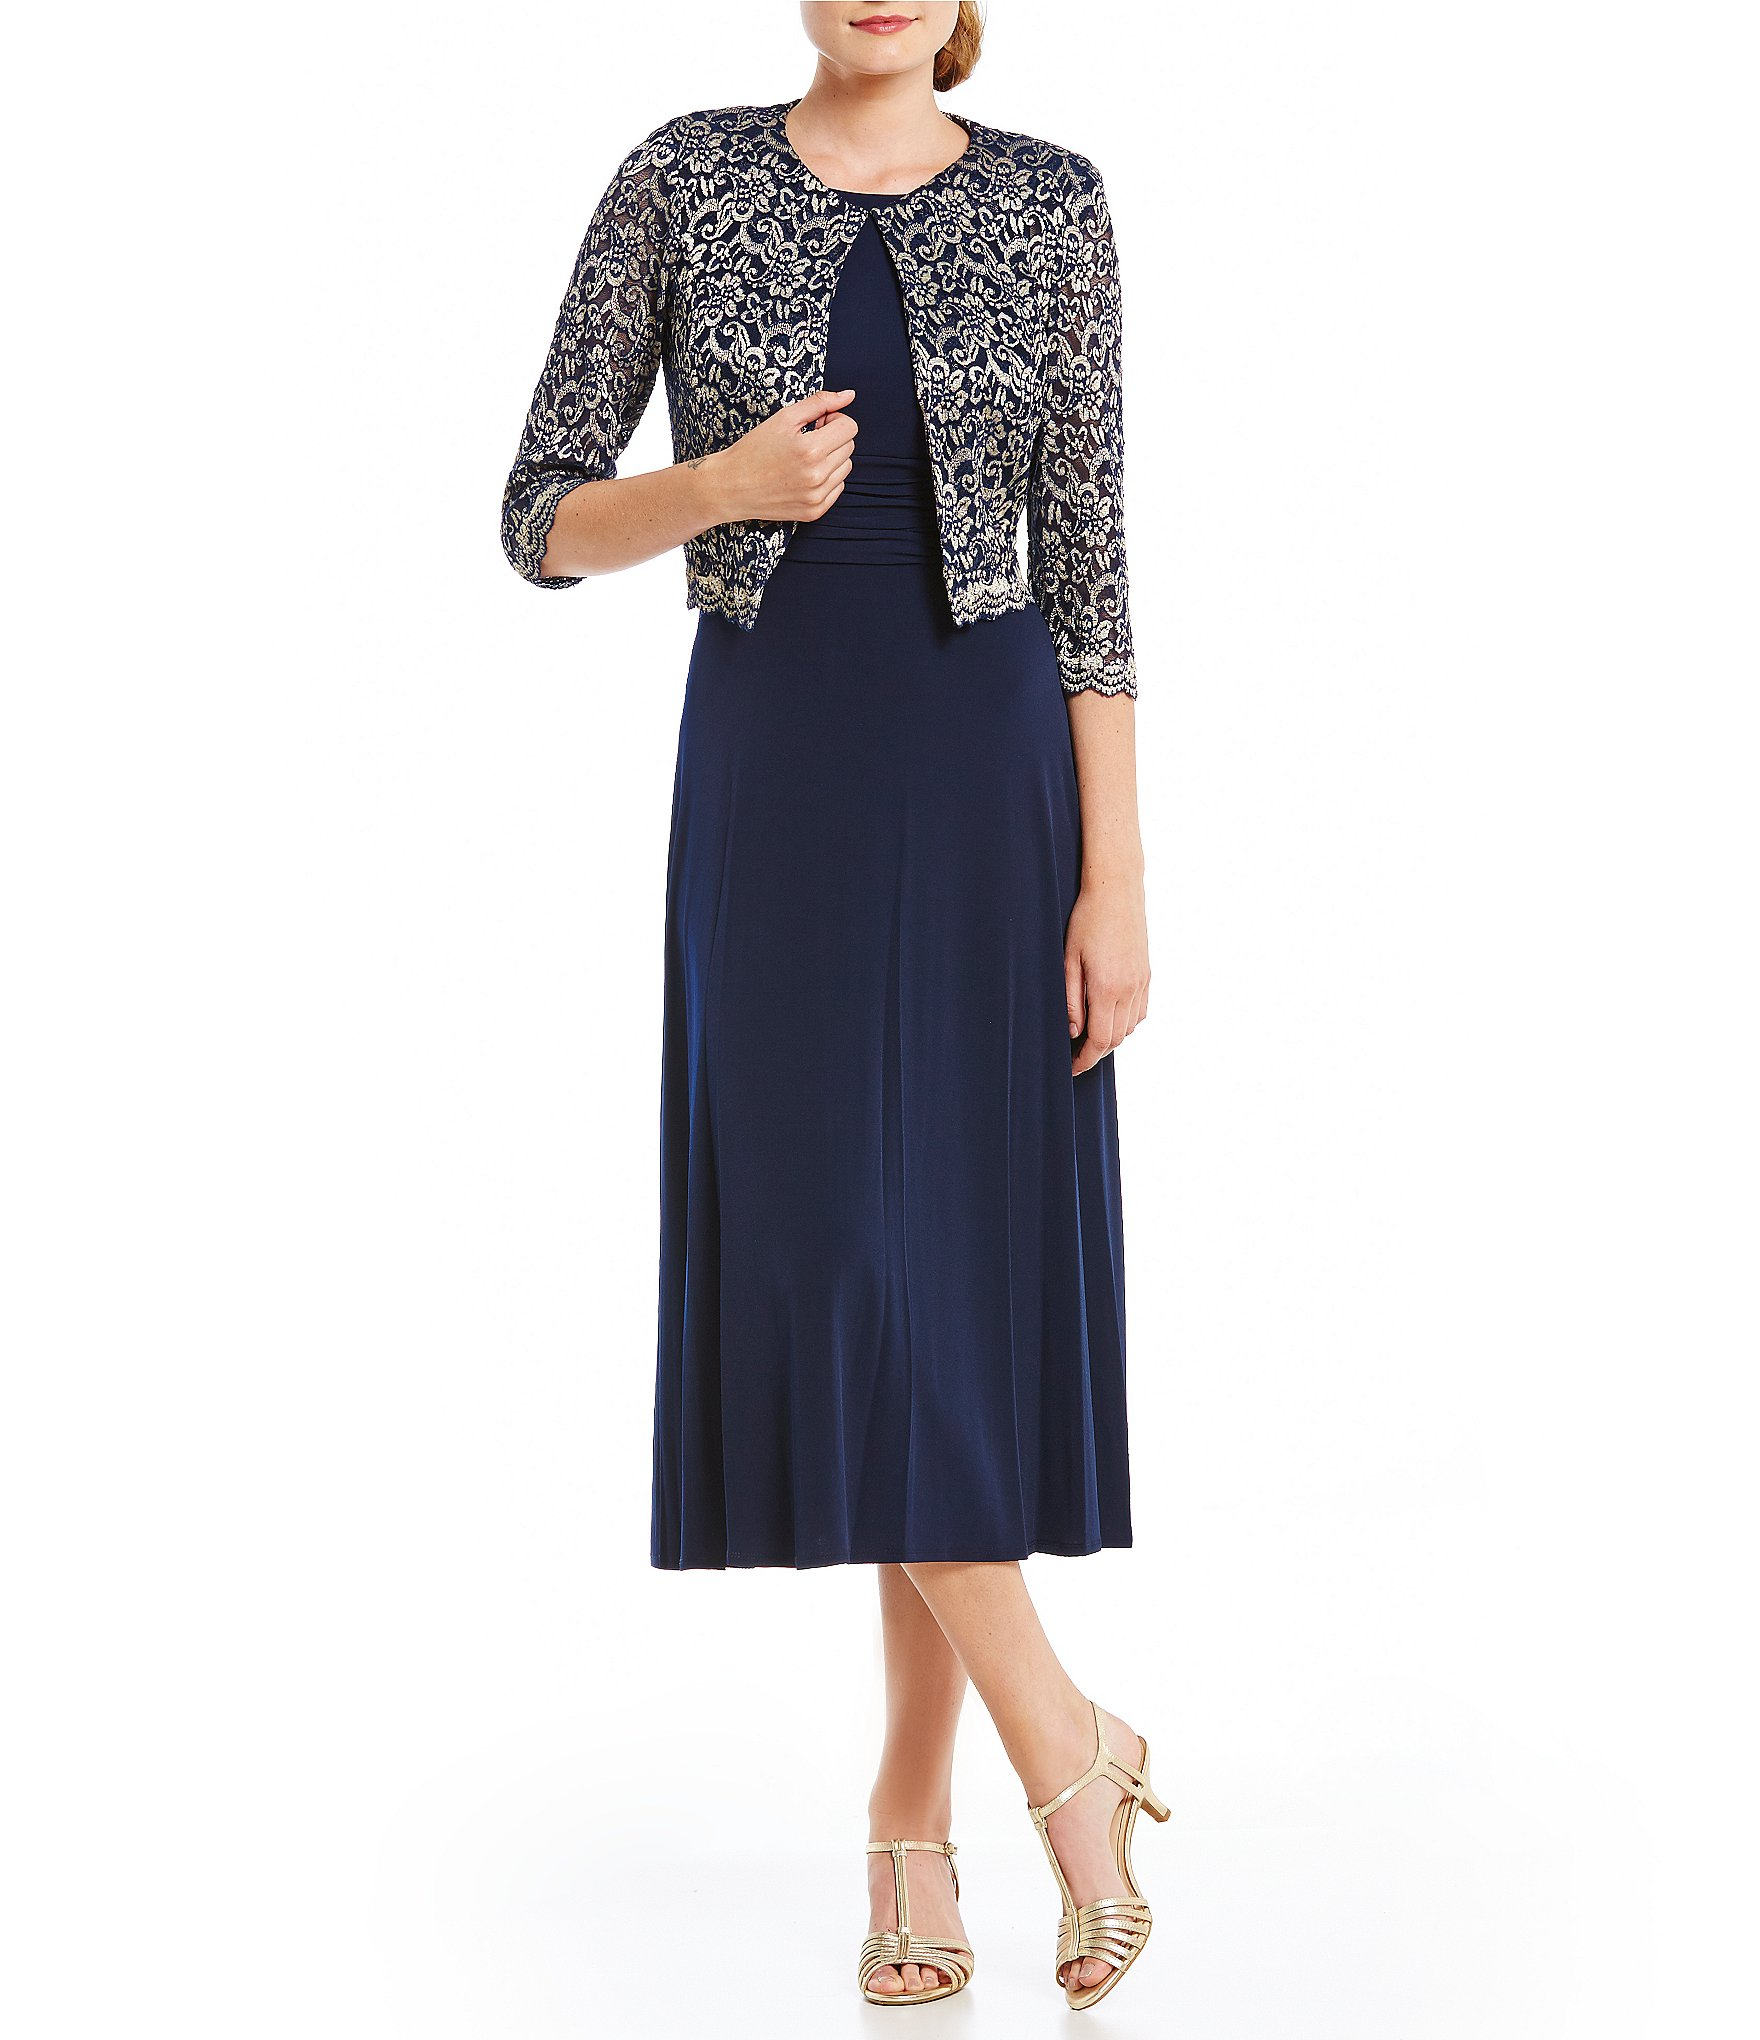 jessica howard dresses jessica howard | dillards.com gejchej